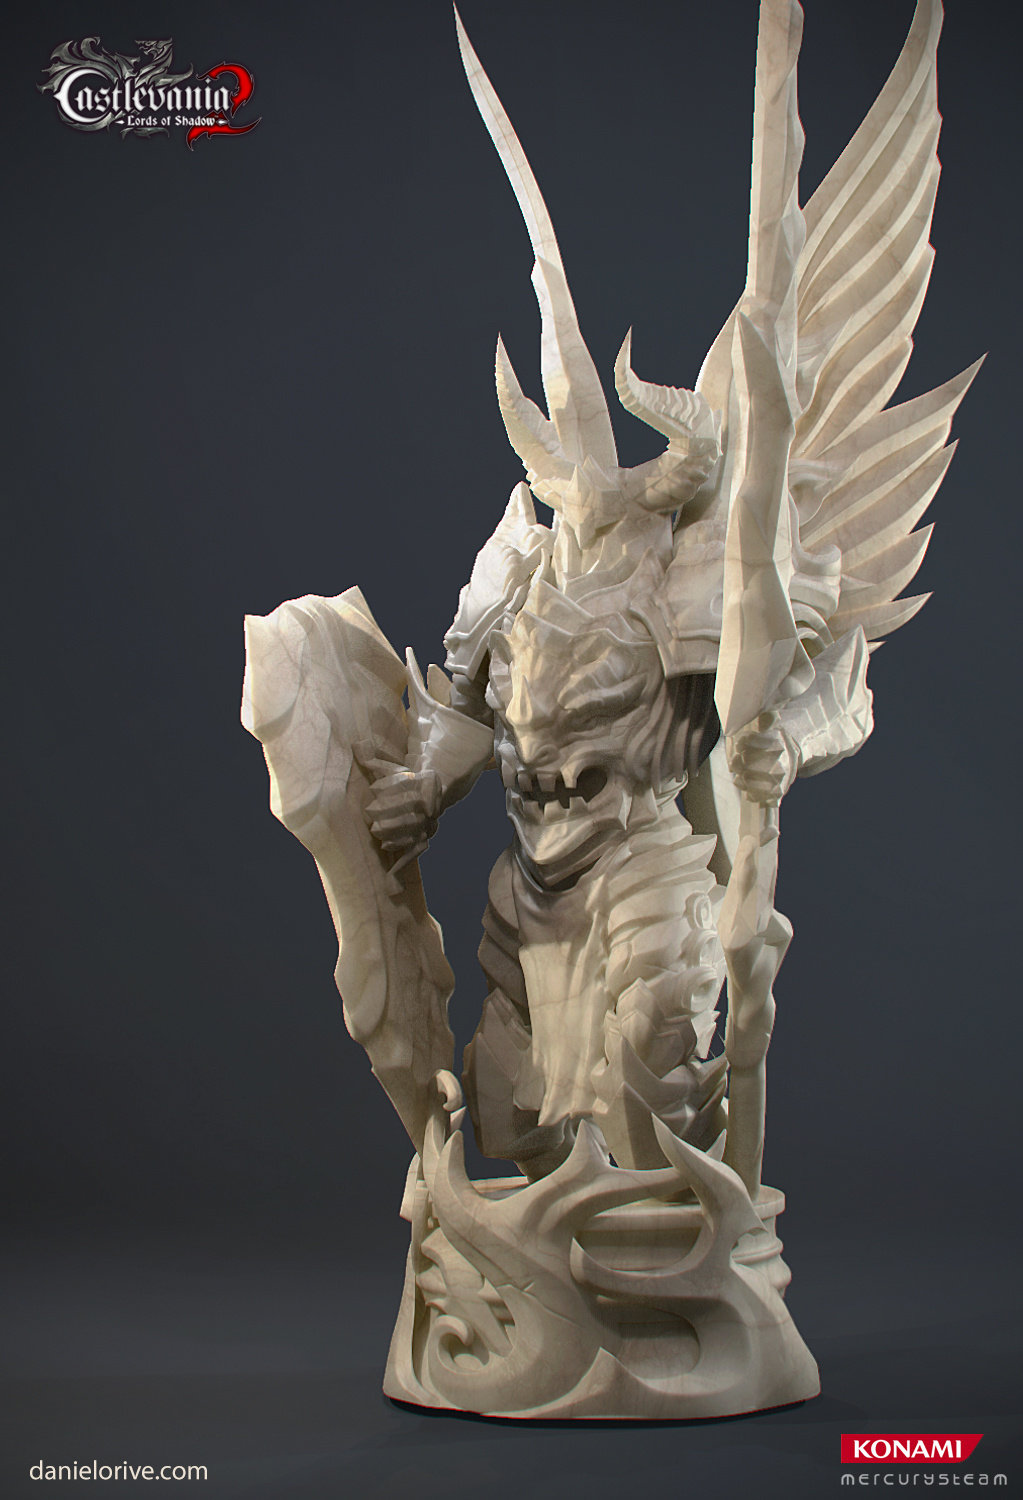 Castlevania Lord of Shadows 2 - Statue